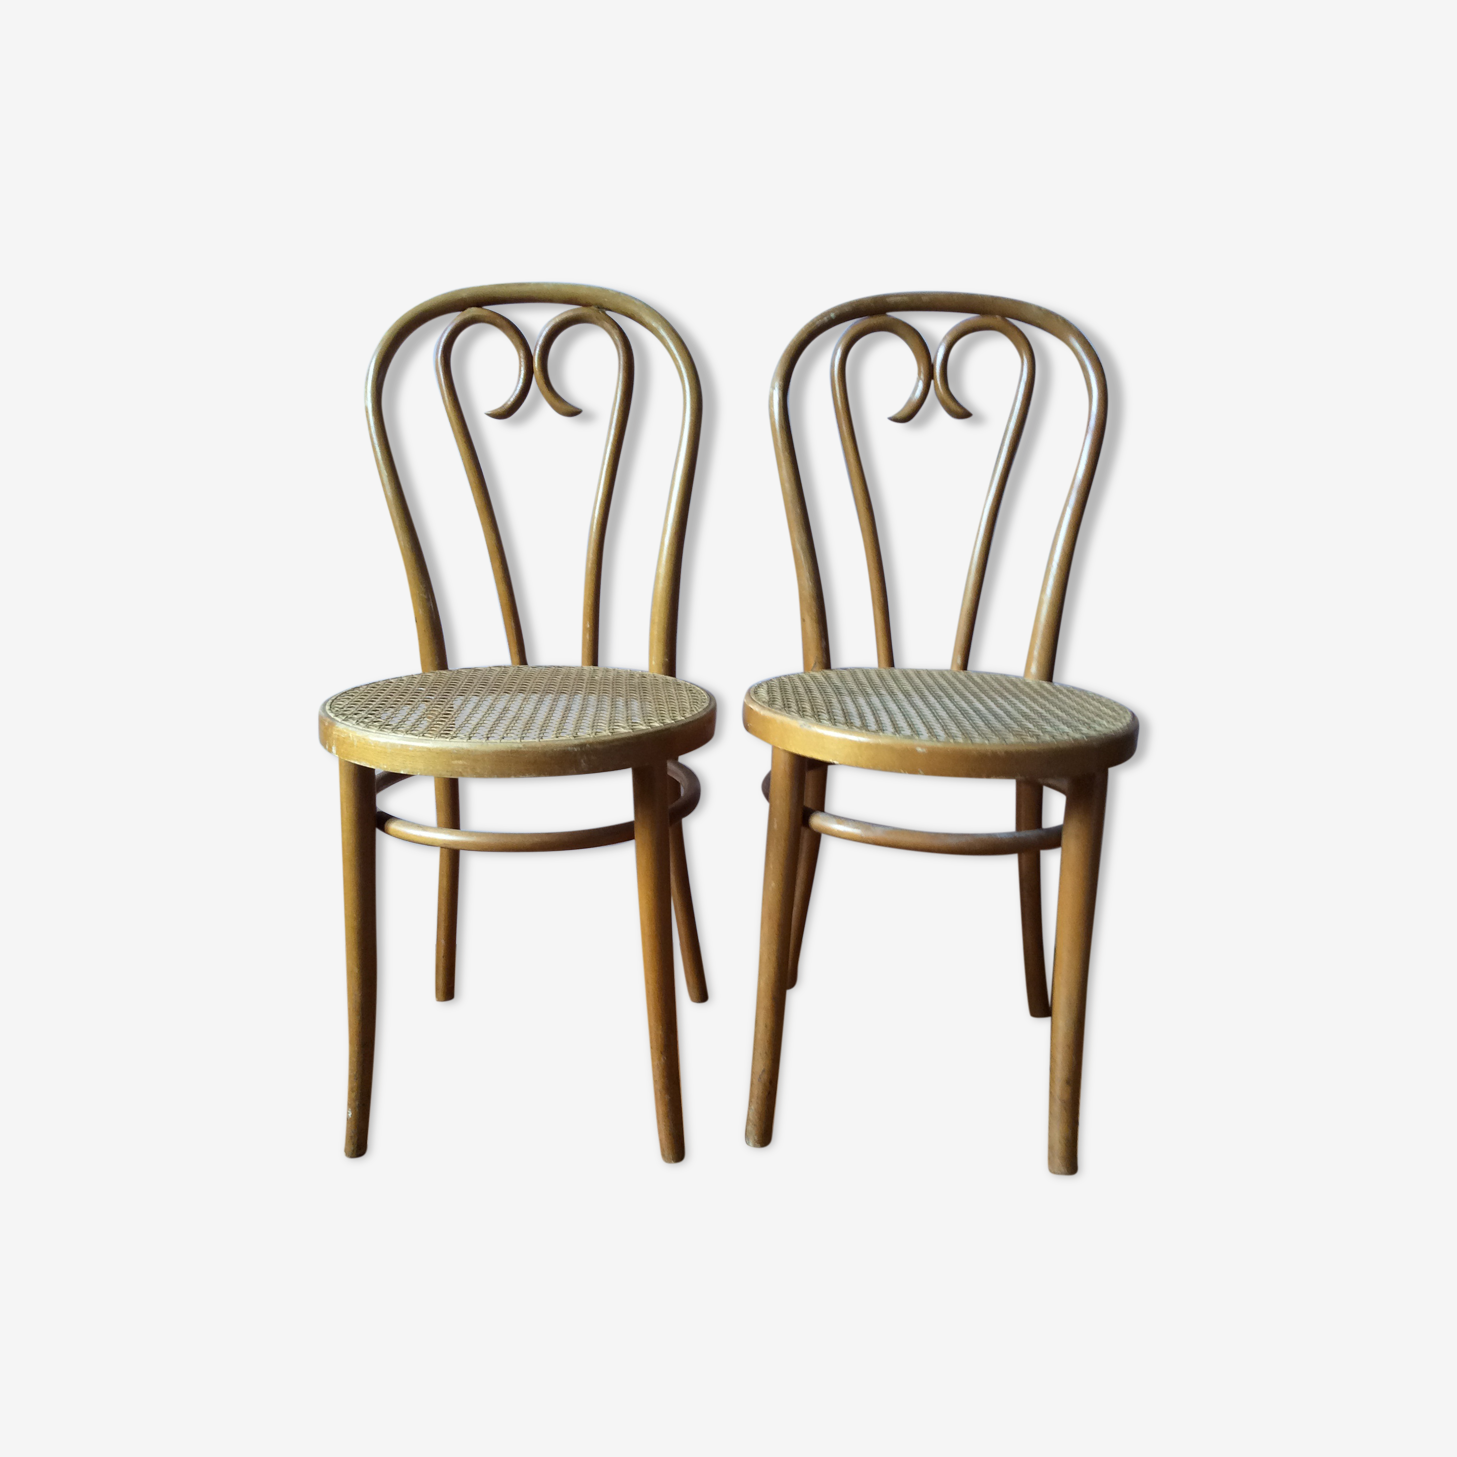 Duo de chaise bistrot